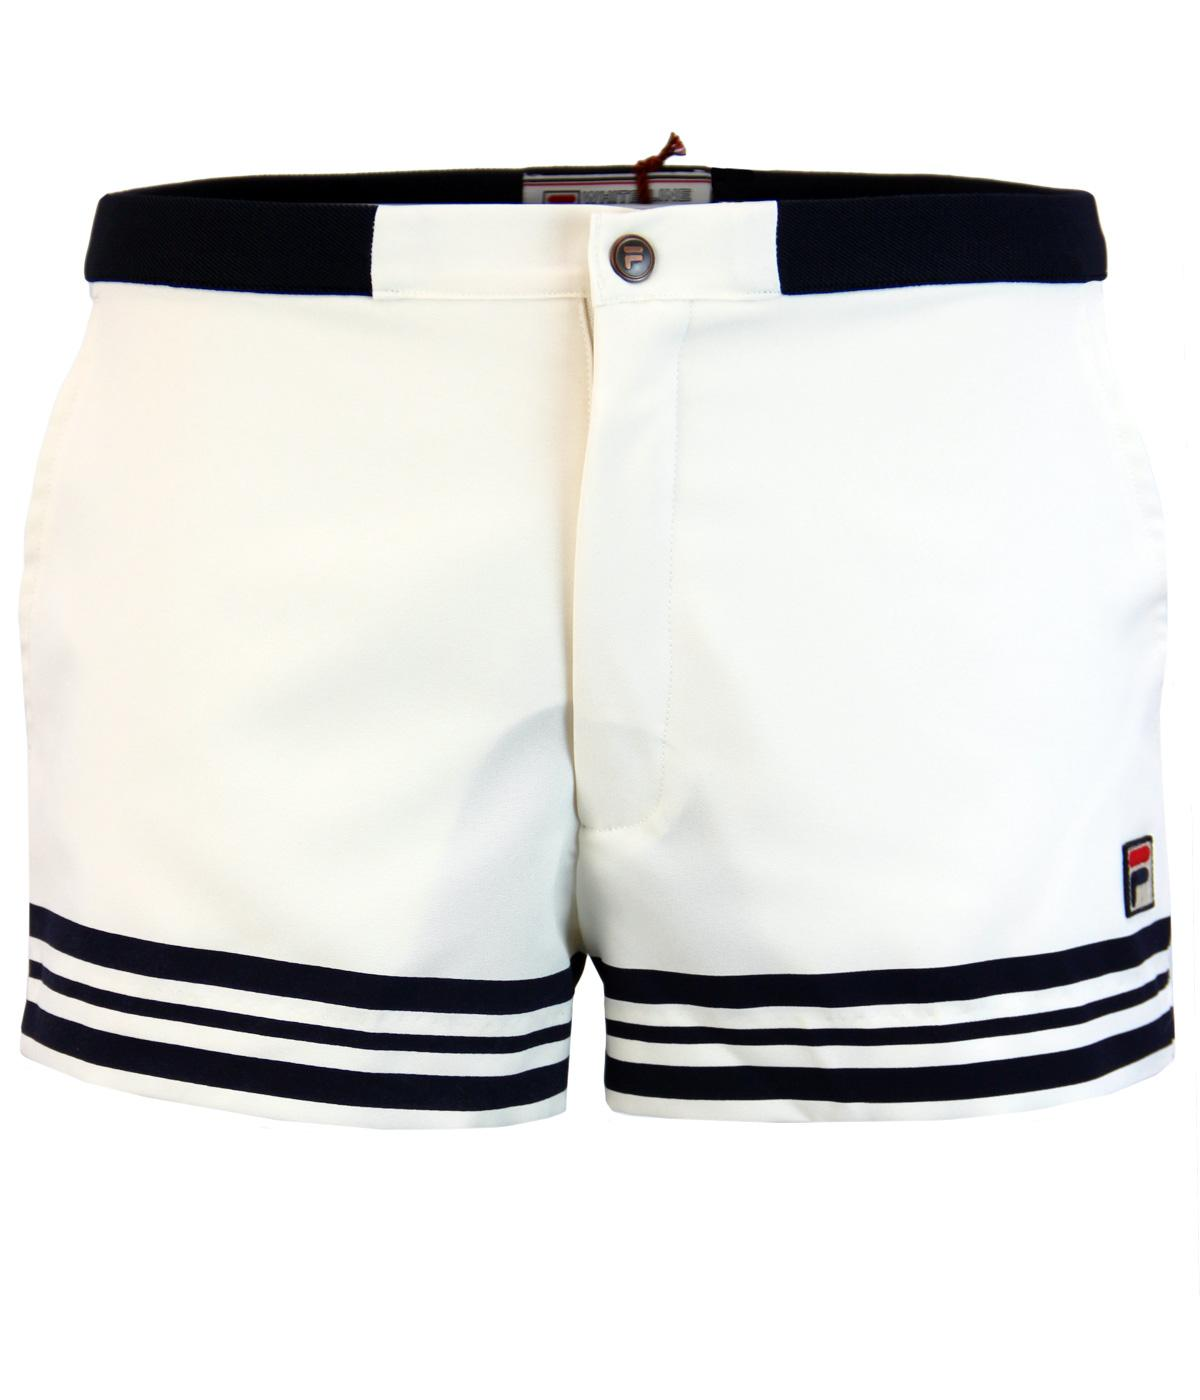 9703d4bb4420 FILA VINTAGE Docka Retro Seventies Tennis Shorts in Gardenia